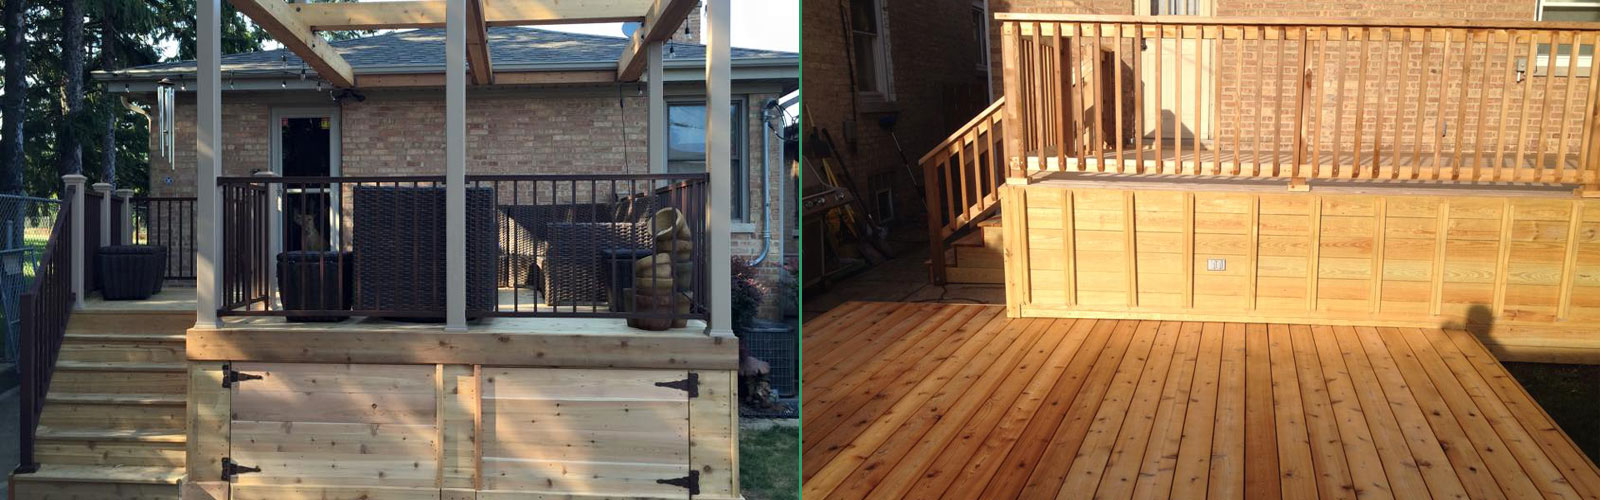 Decks Remodeling Work